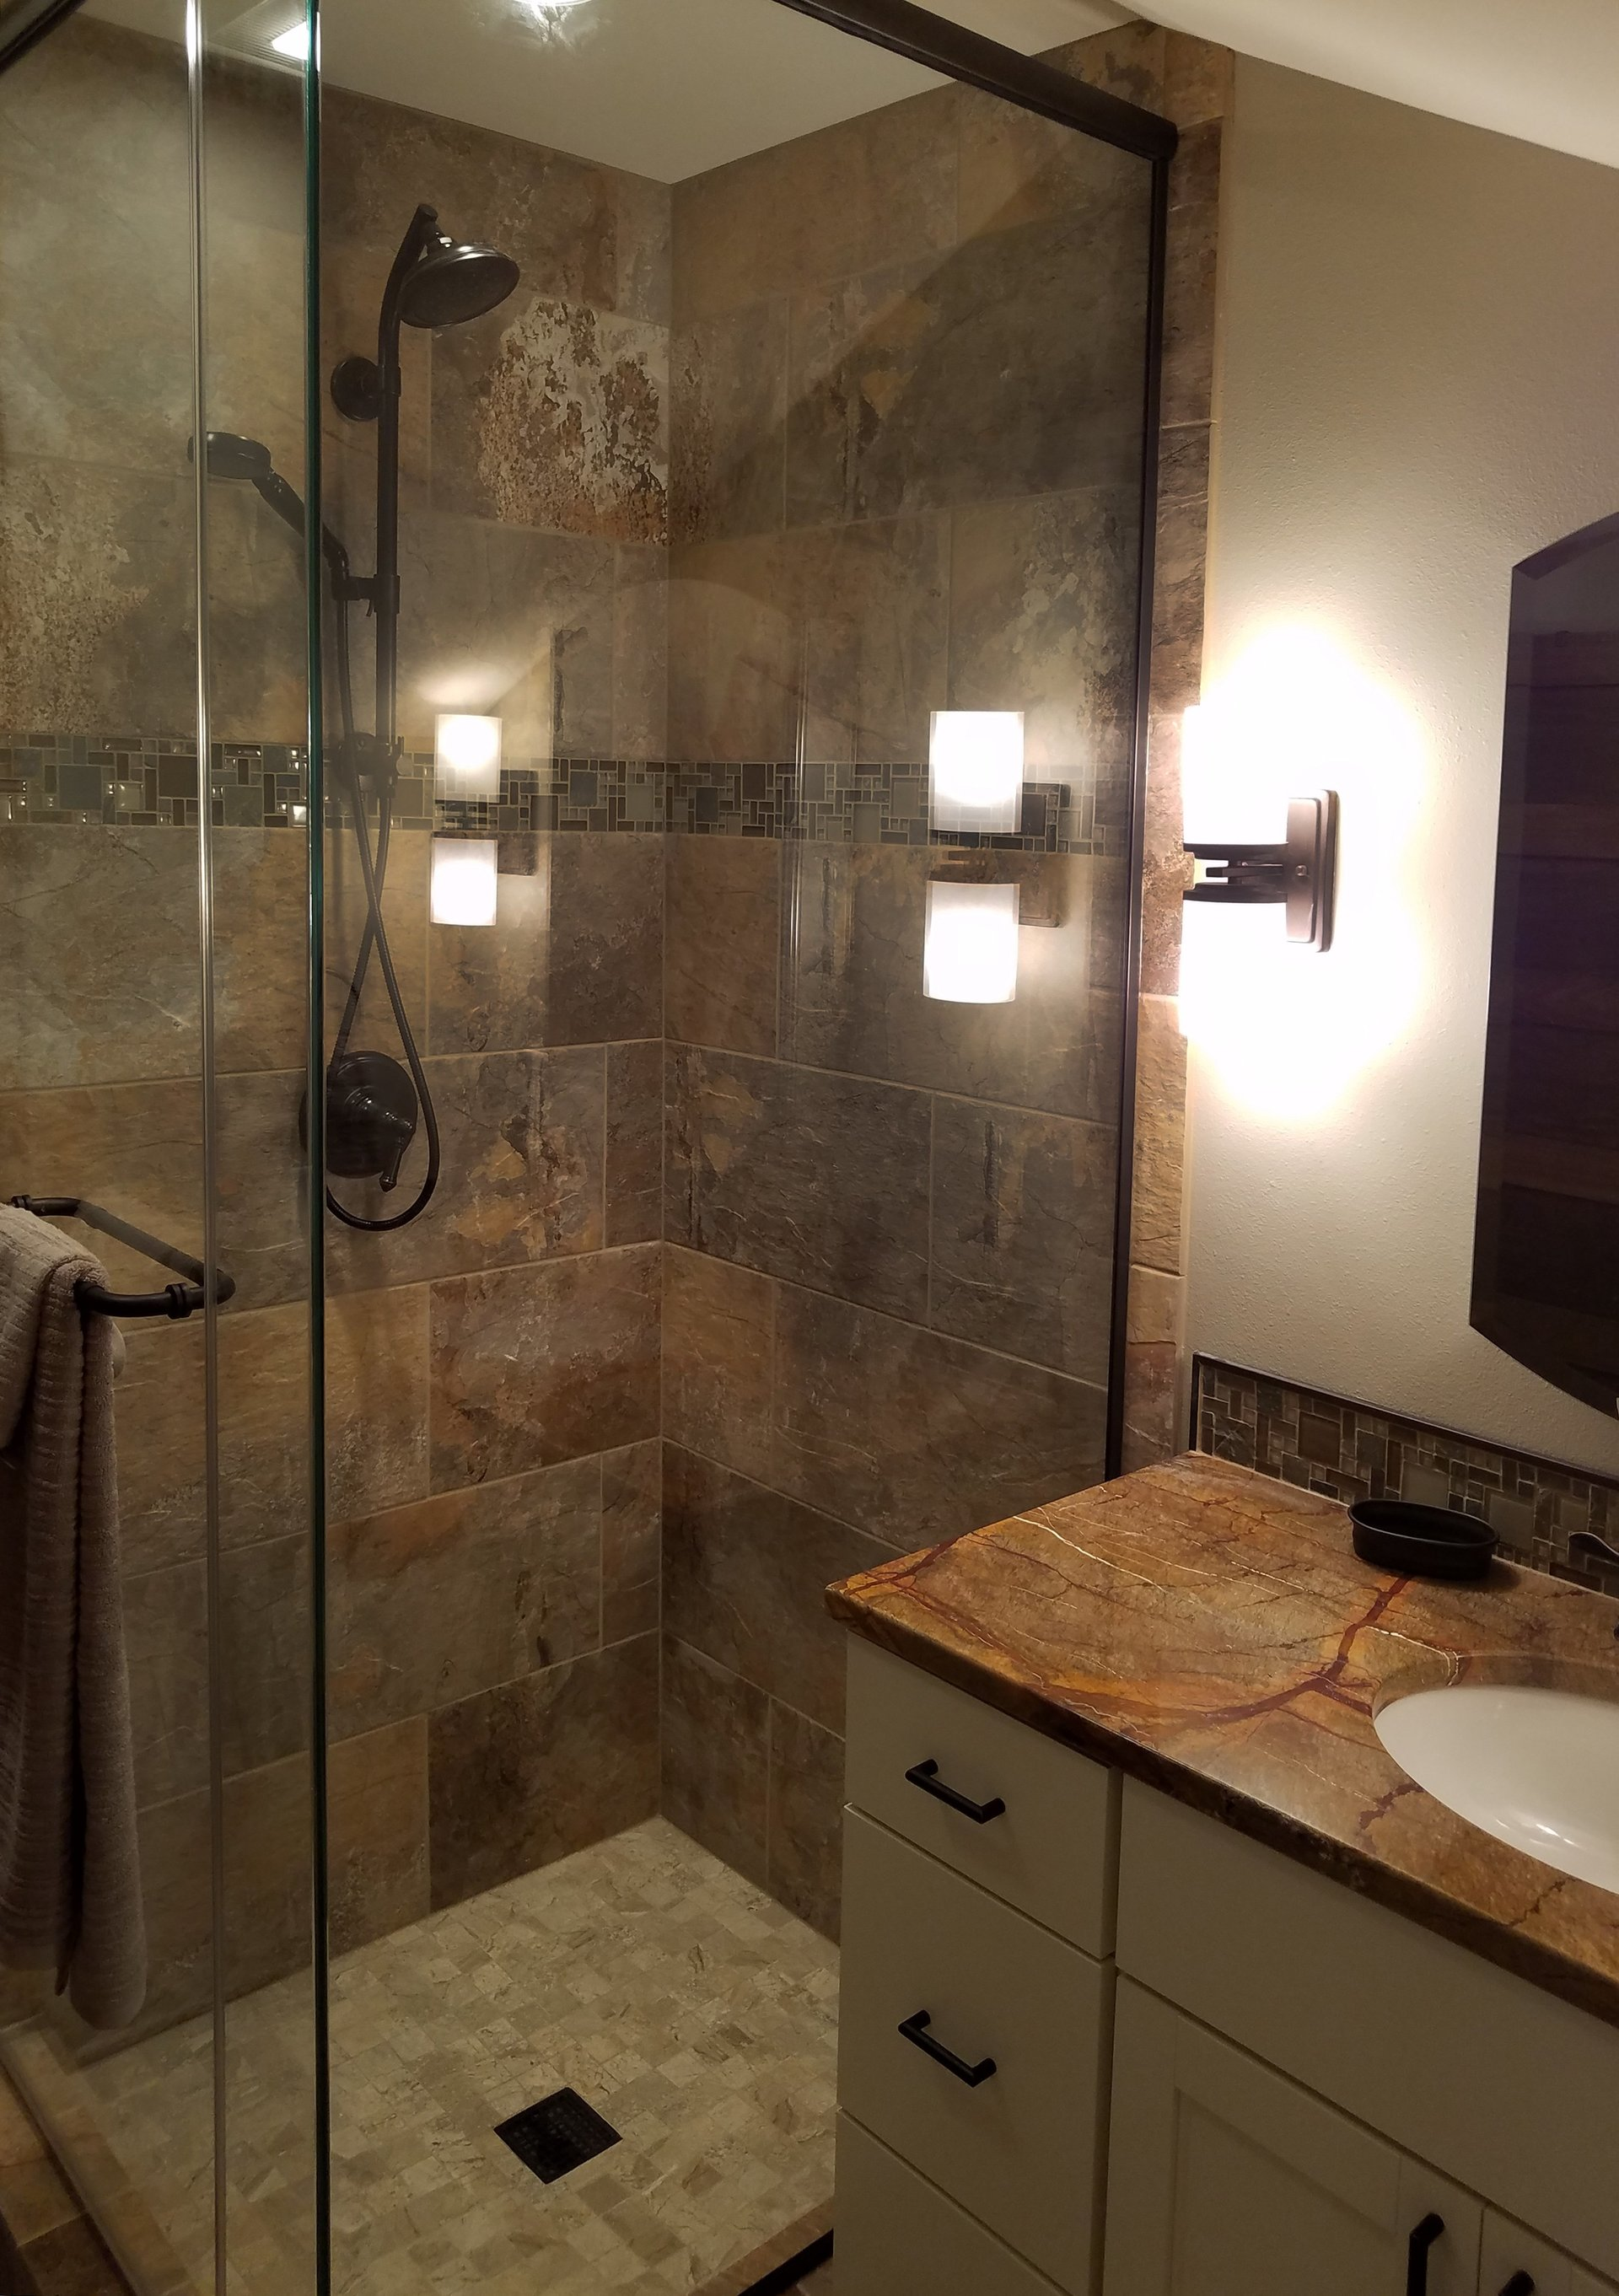 small corner shower, oiled rubbed bronze shower fixtures, glass corner shower surround